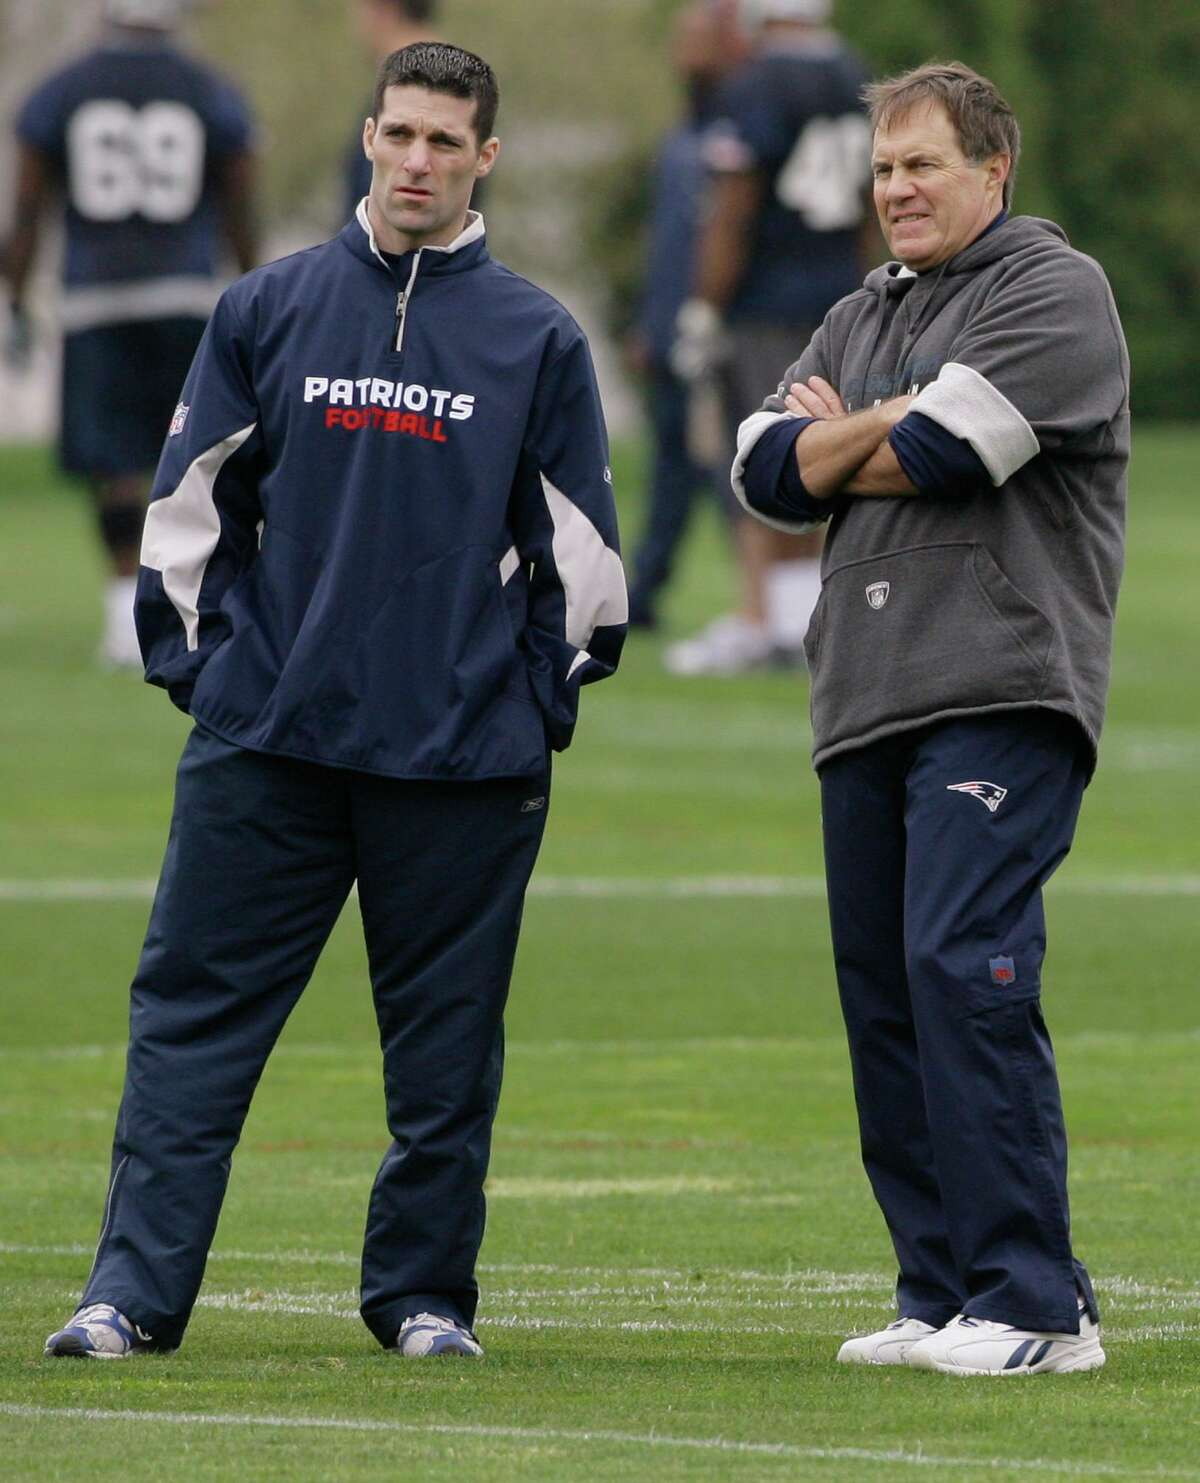 Nick Caserio has only worked for one head coach in the NFL - Bill Belichick with the Patriots. His first job with the Texans will be to help pick his own head coach.